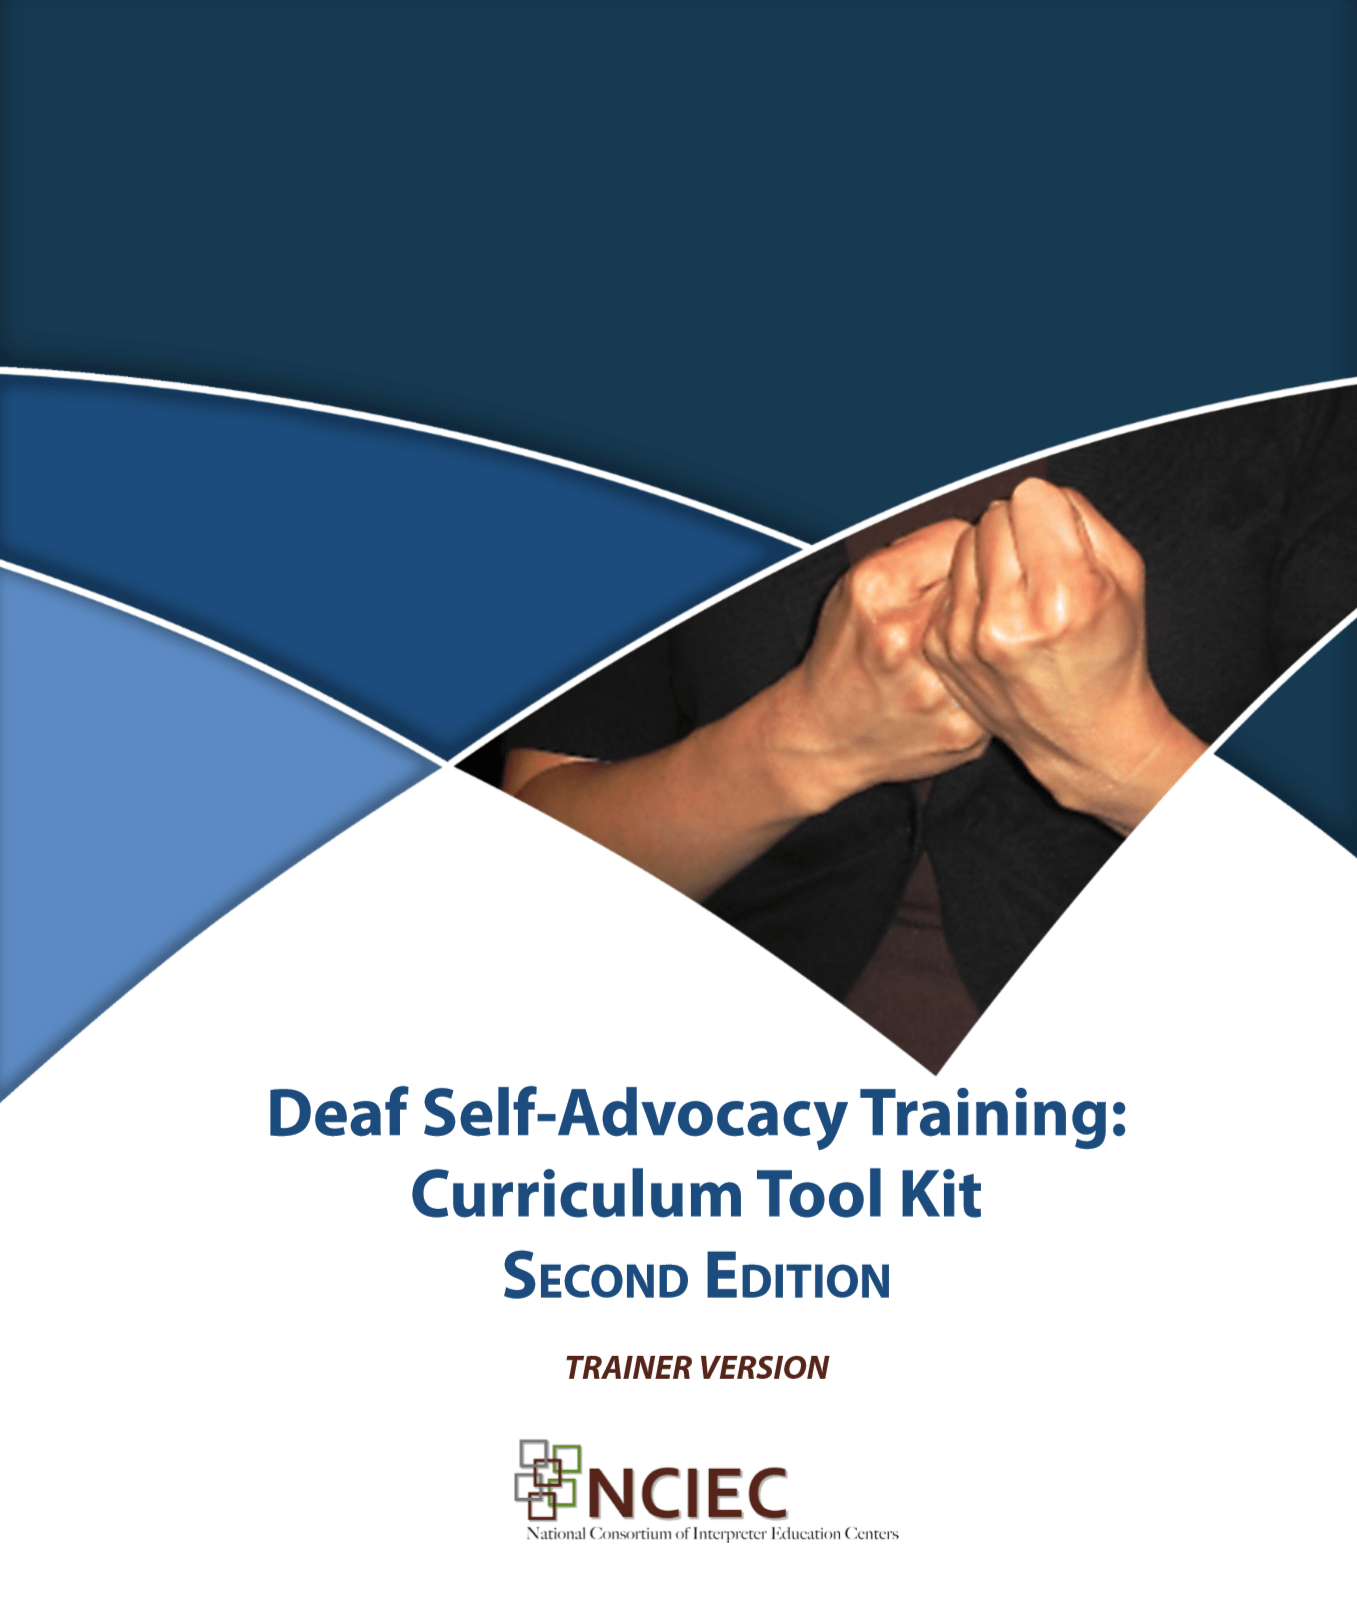 """Cover of the training manual entitled """"Deaf Self-Advocacy Training: Curriculum Tool Kit, Second Edition, Trainer Version"""" with the logo for NCIED (National Consortium of Interpreter Training Centers). Above the title is an abstract design in medium and dark blue, along with a photograph of two hands held in the shape of the sign for """"advocacy"""""""